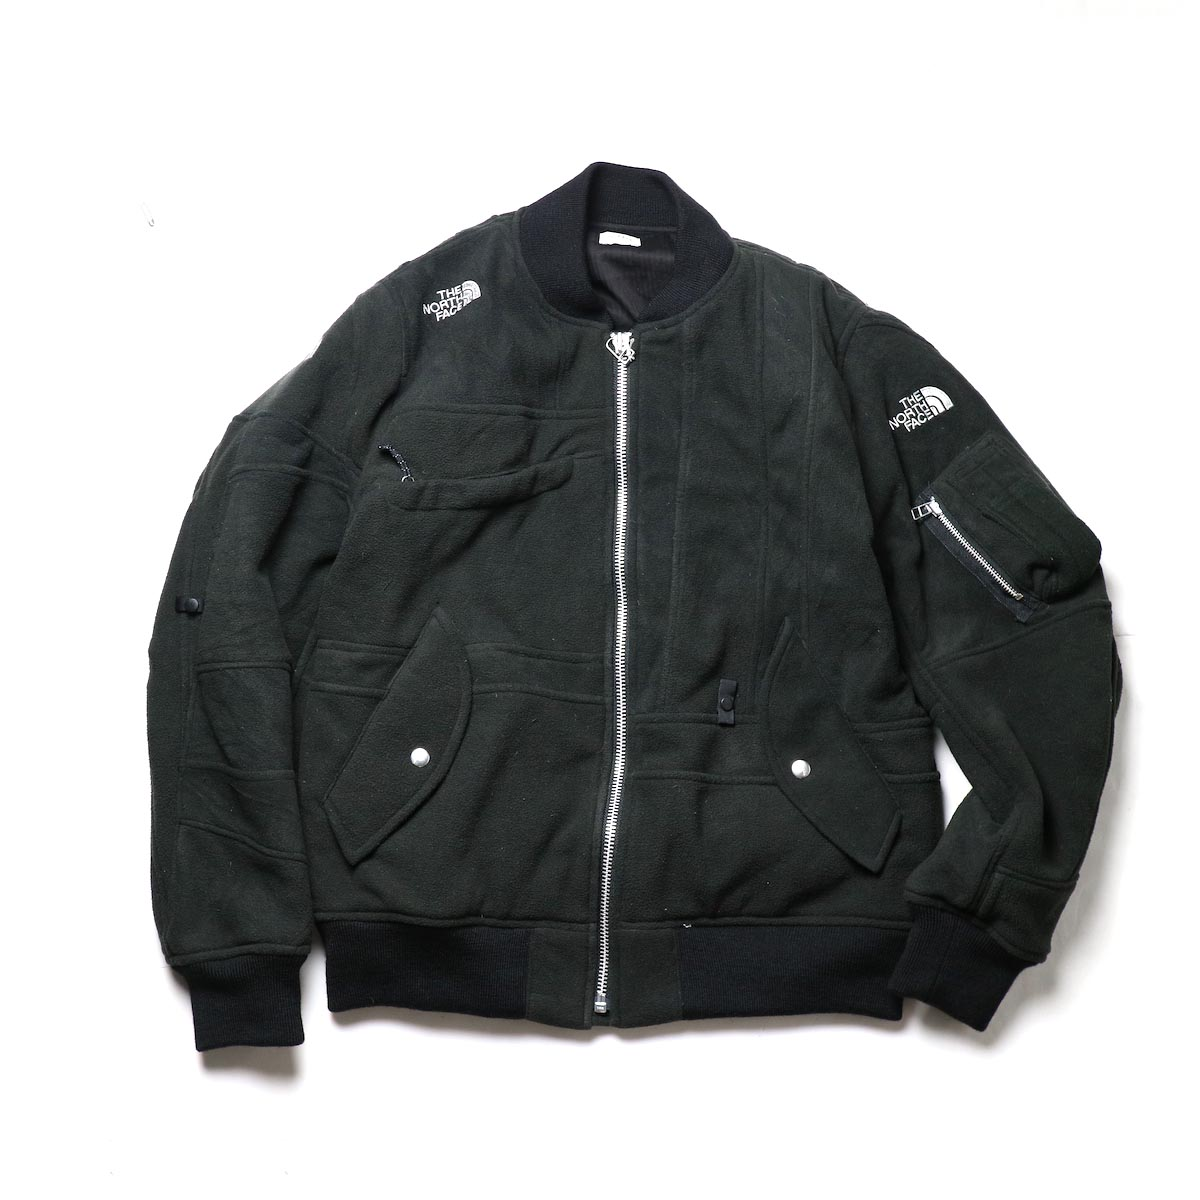 OLD PARK / Flight Jacket Outdoor (Lsize)